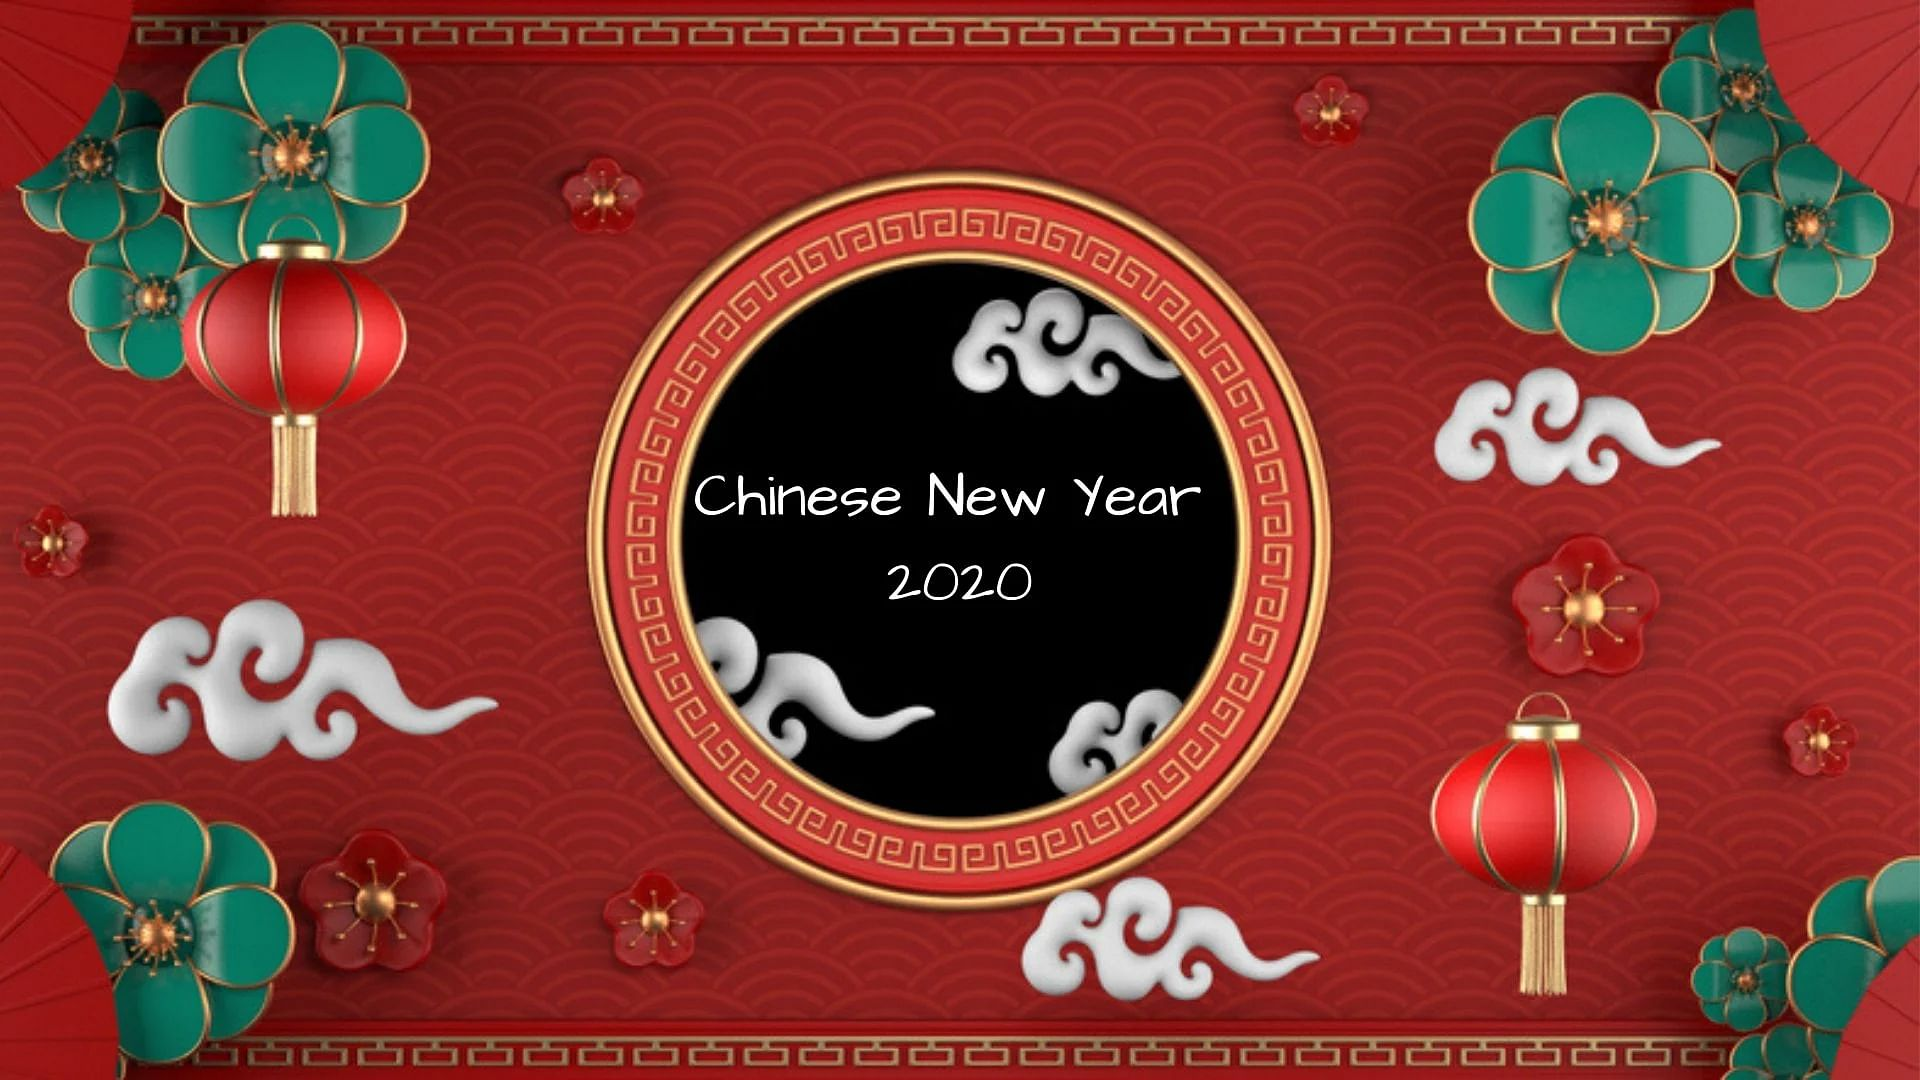 happy chinese new year 2020 greetings images wishes and quotes in chinese on lunar new year or spring festival greet your friends family with these wishes happy chinese new year 2020 greetings